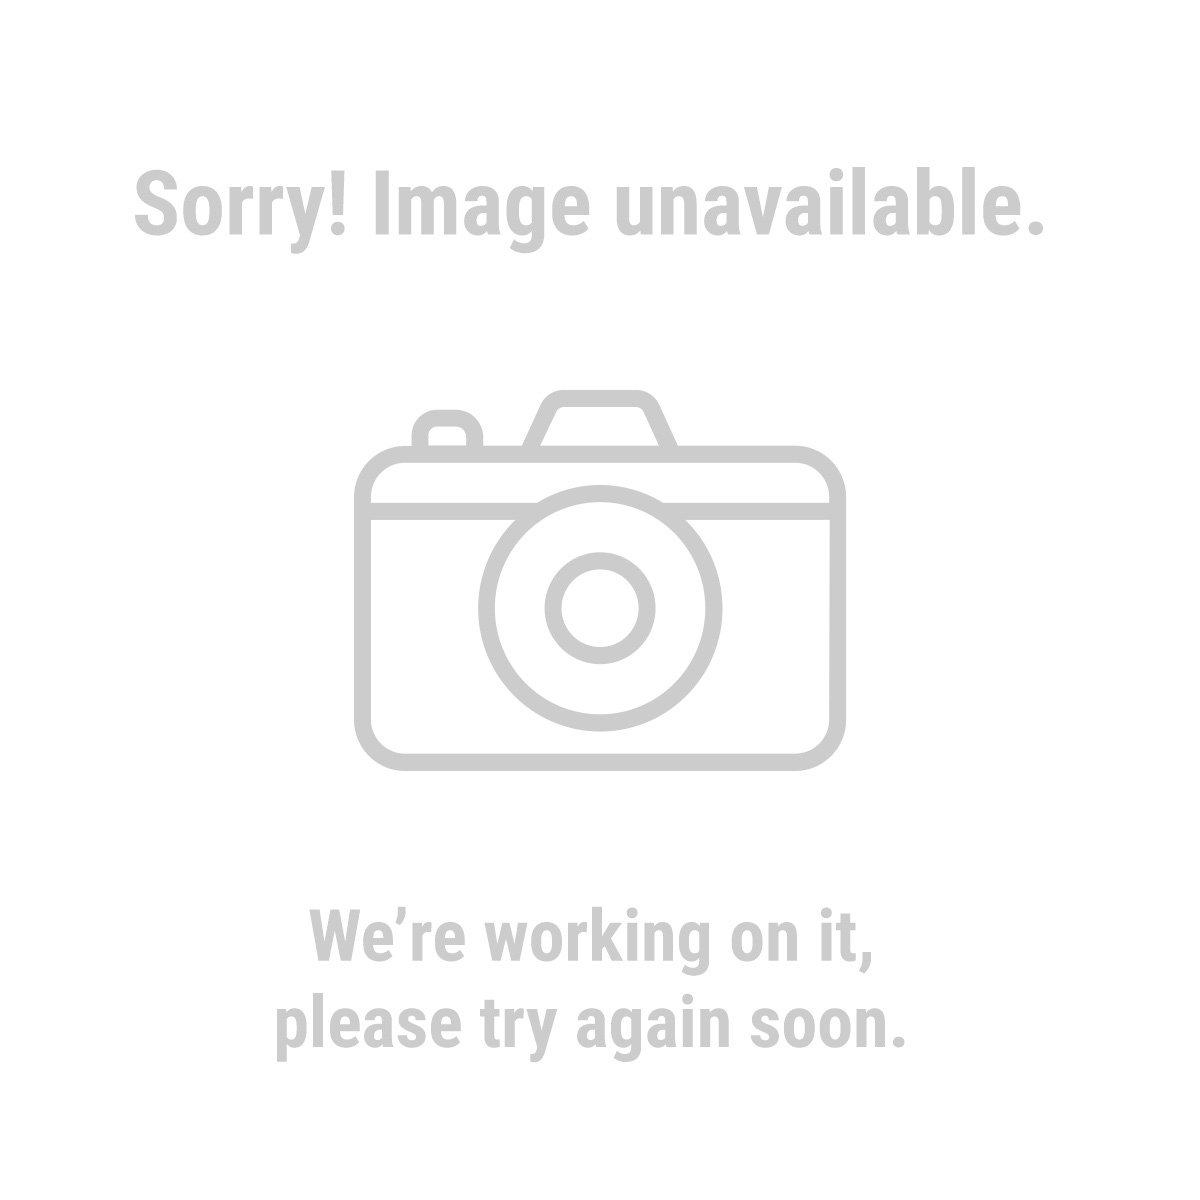 Earthquake® XT 62892 3/4 in. Composite Xtreme Torque Air Impact Wrench